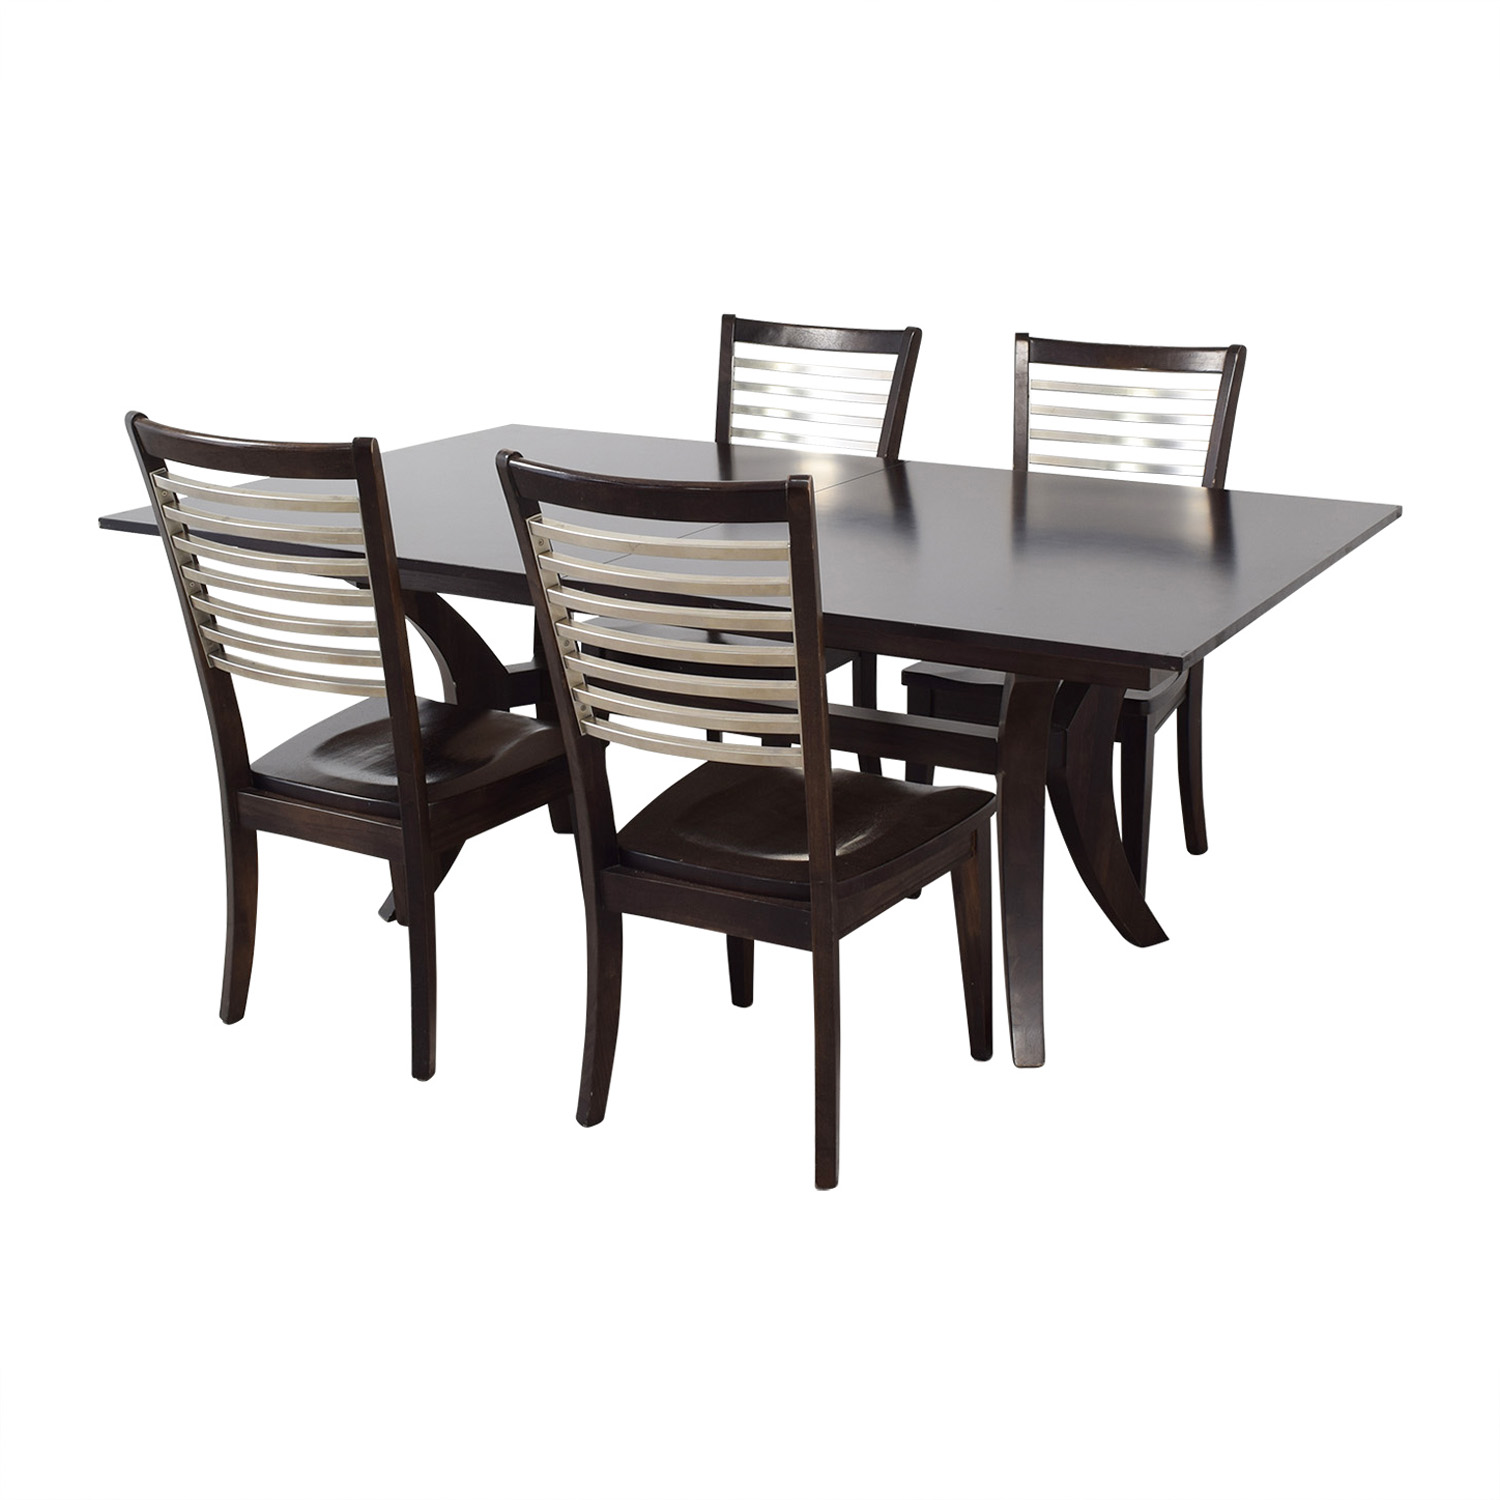 Bassett Furniture Bassett Furniture Extendable Dining Set discount